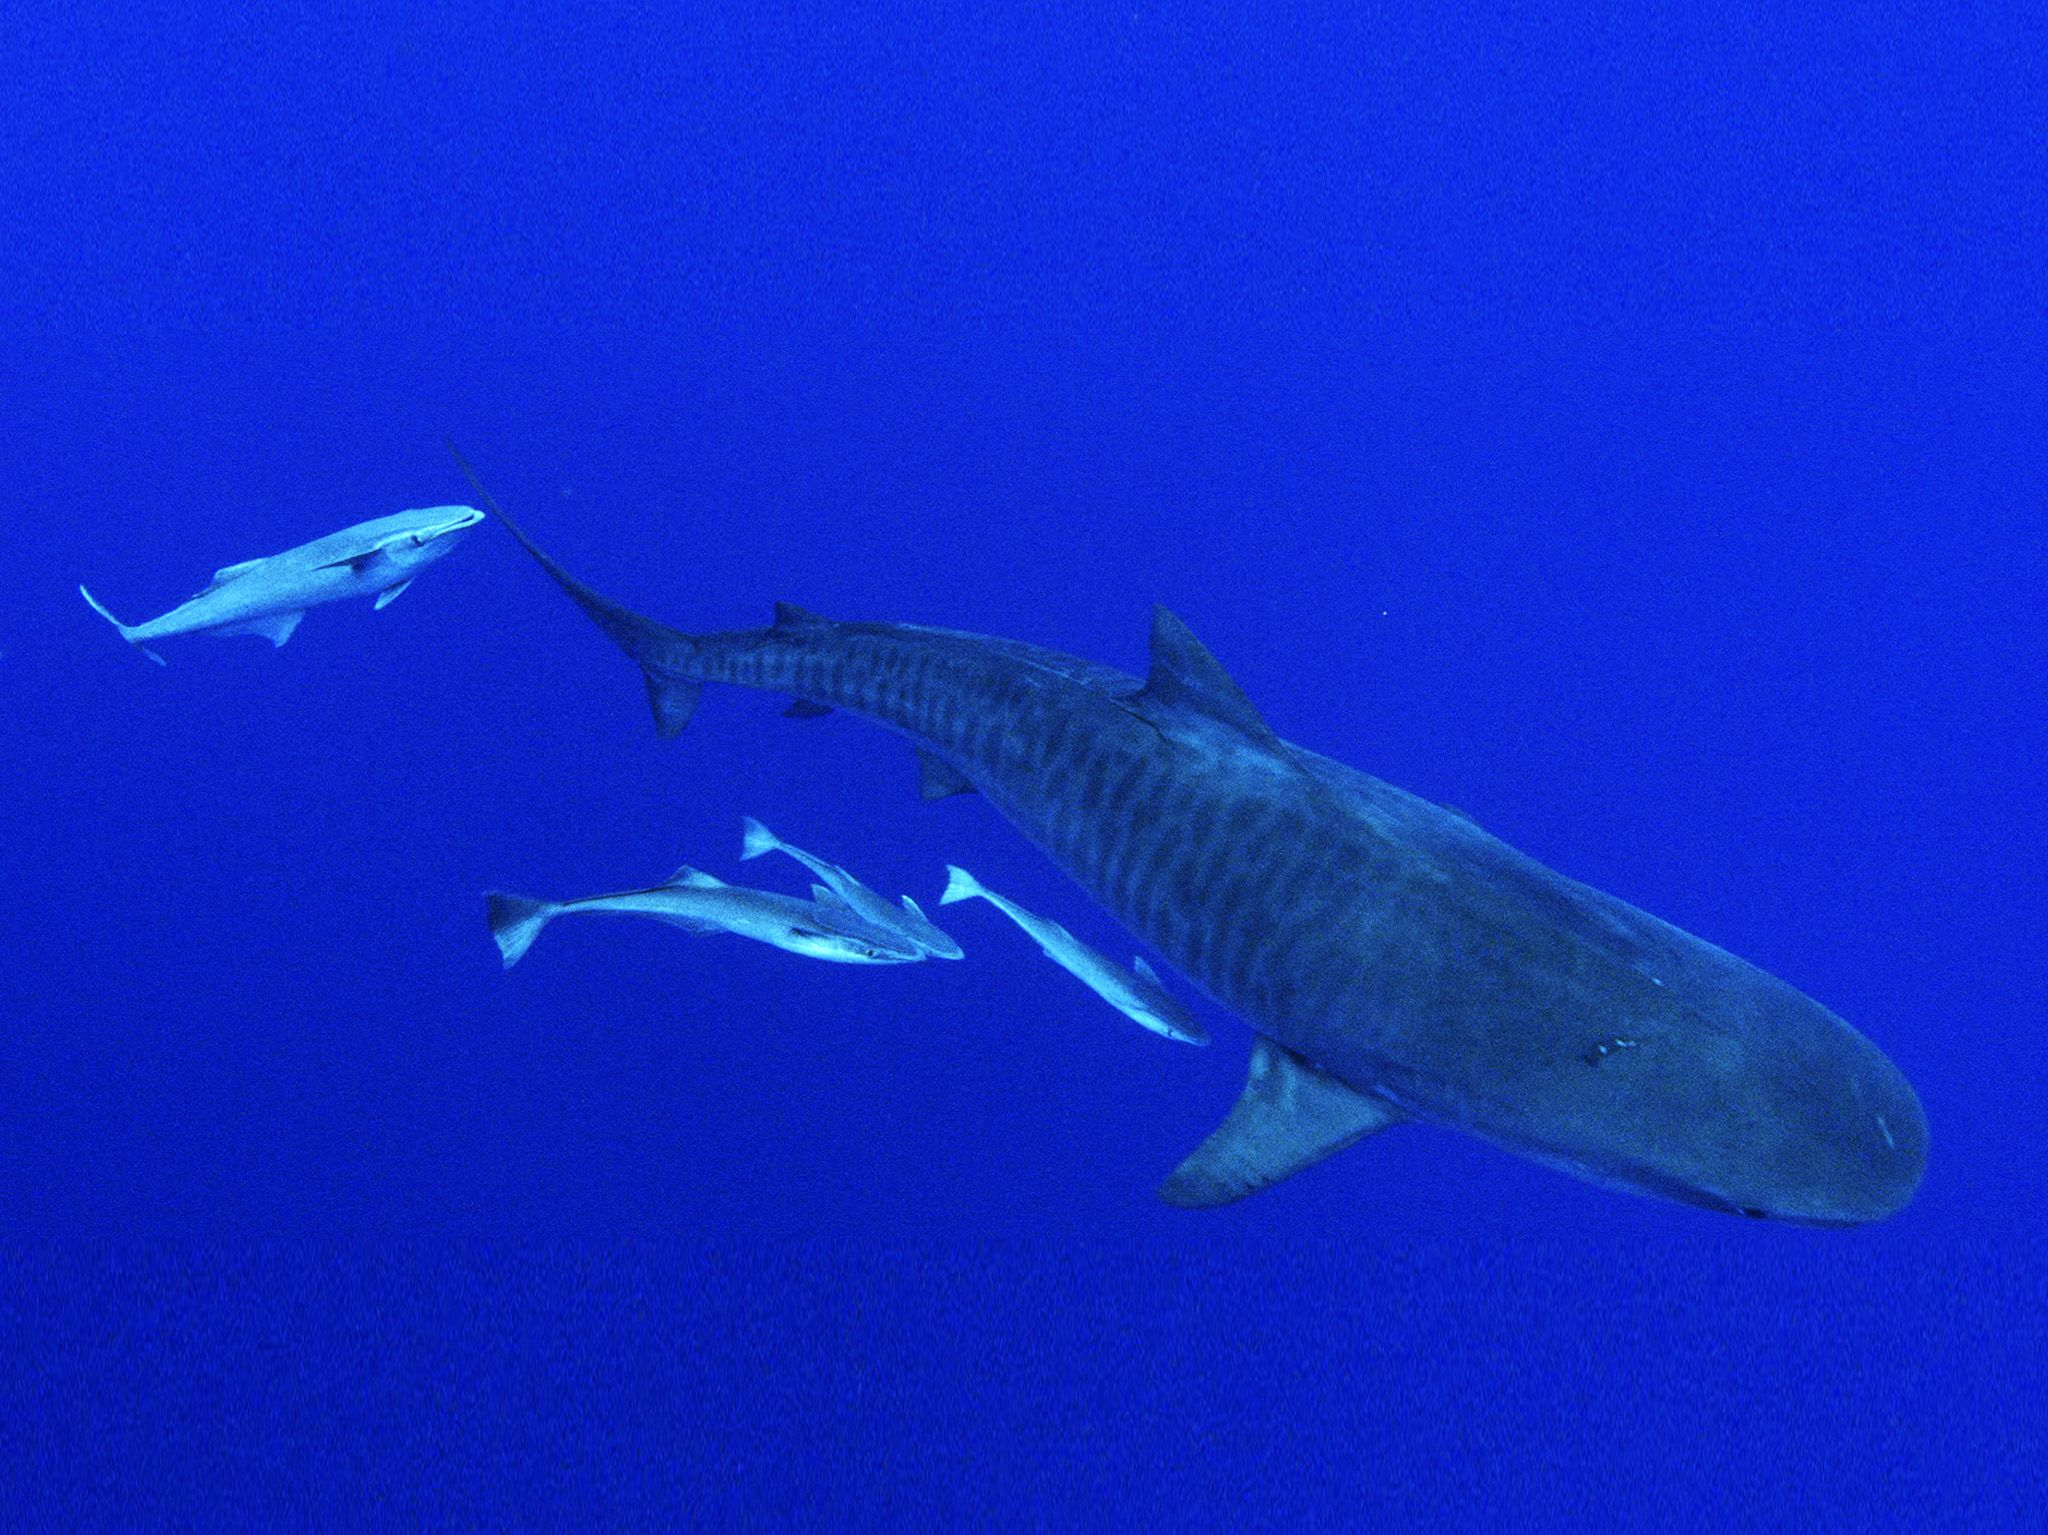 Ascension Island, St Helena:  Tiger shark with remora fish.  This image is from Shark v. Tuna. [Photo of the day - July 2018]